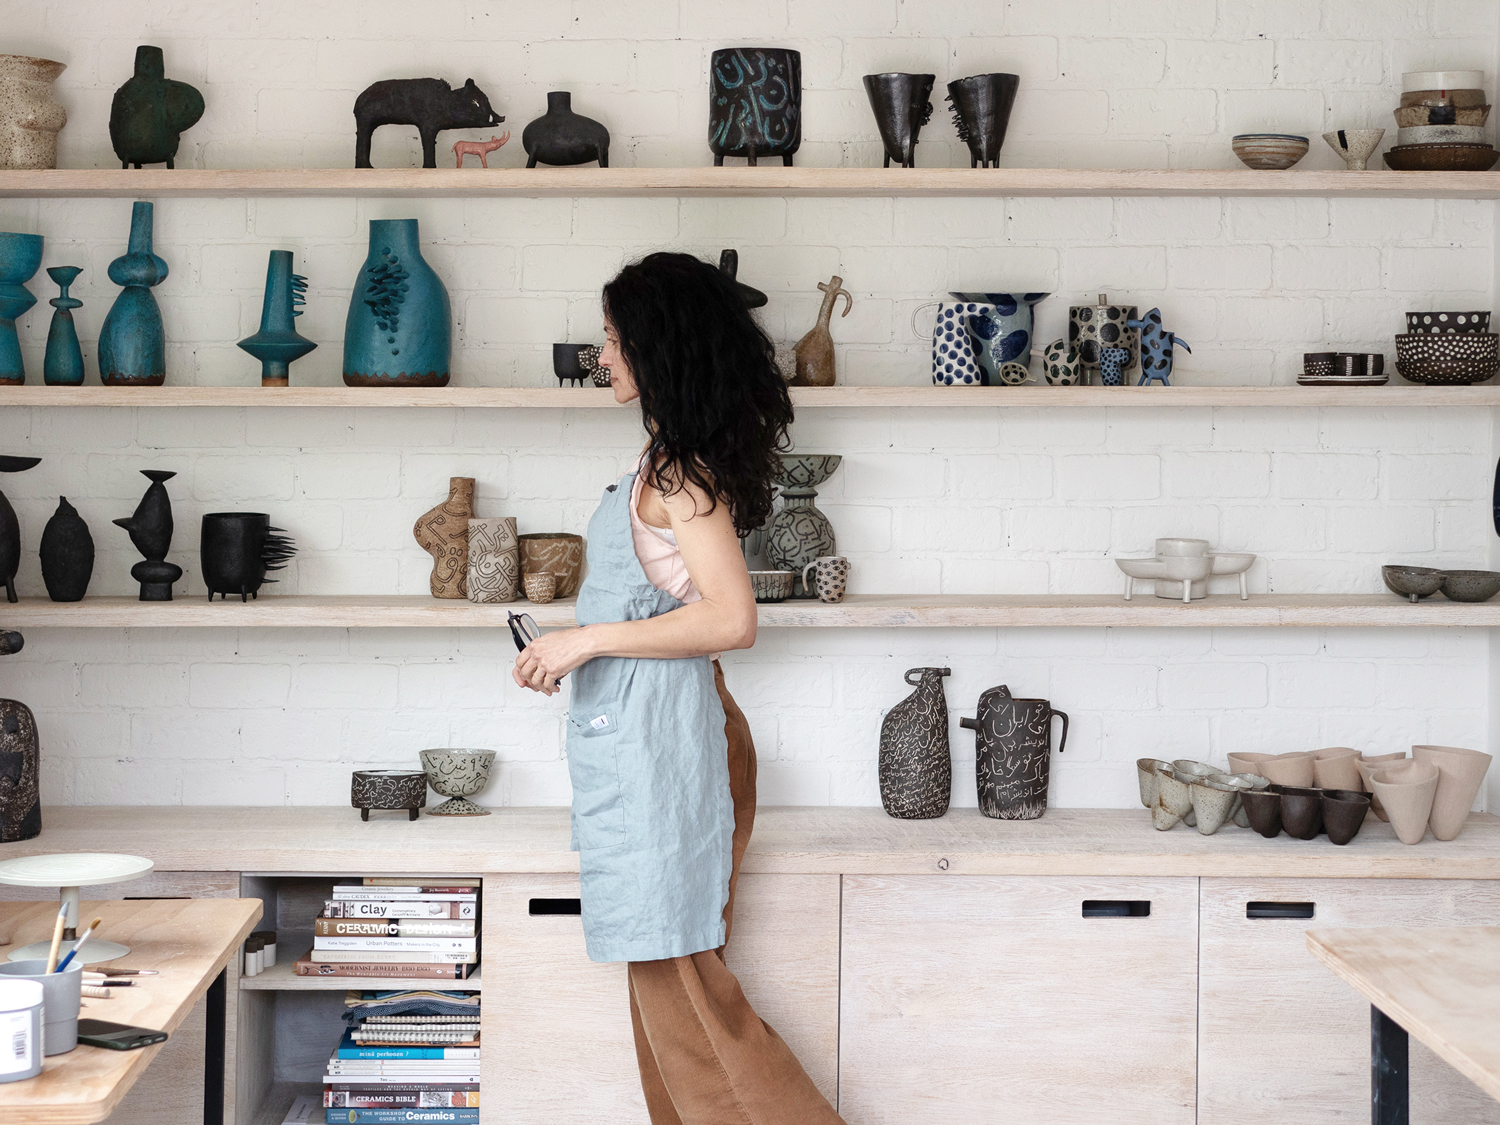 Ceramics pic of the month: Maryam Riazi | Eclectic Trends